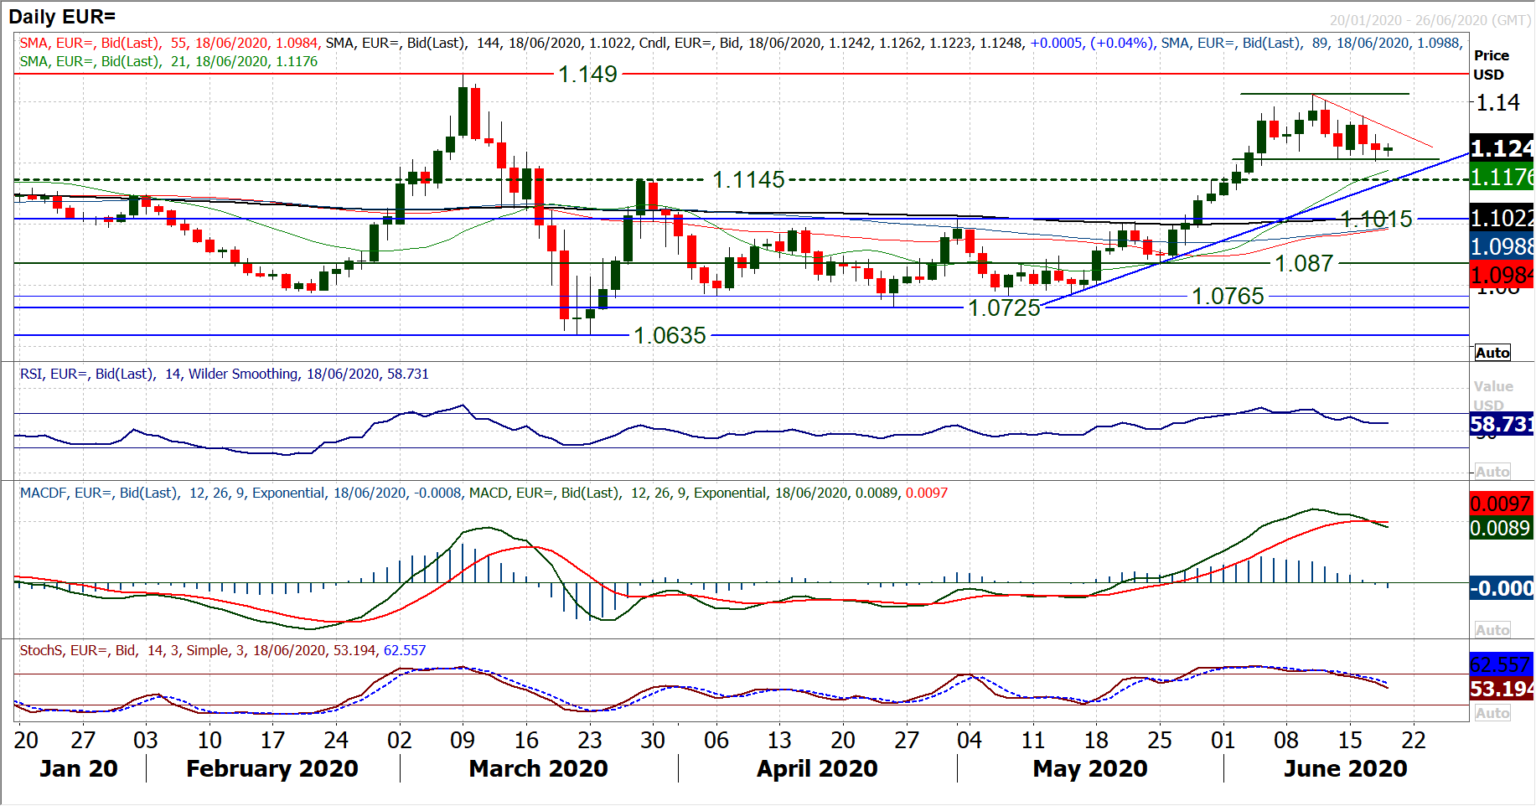 EUR-Daily Chart